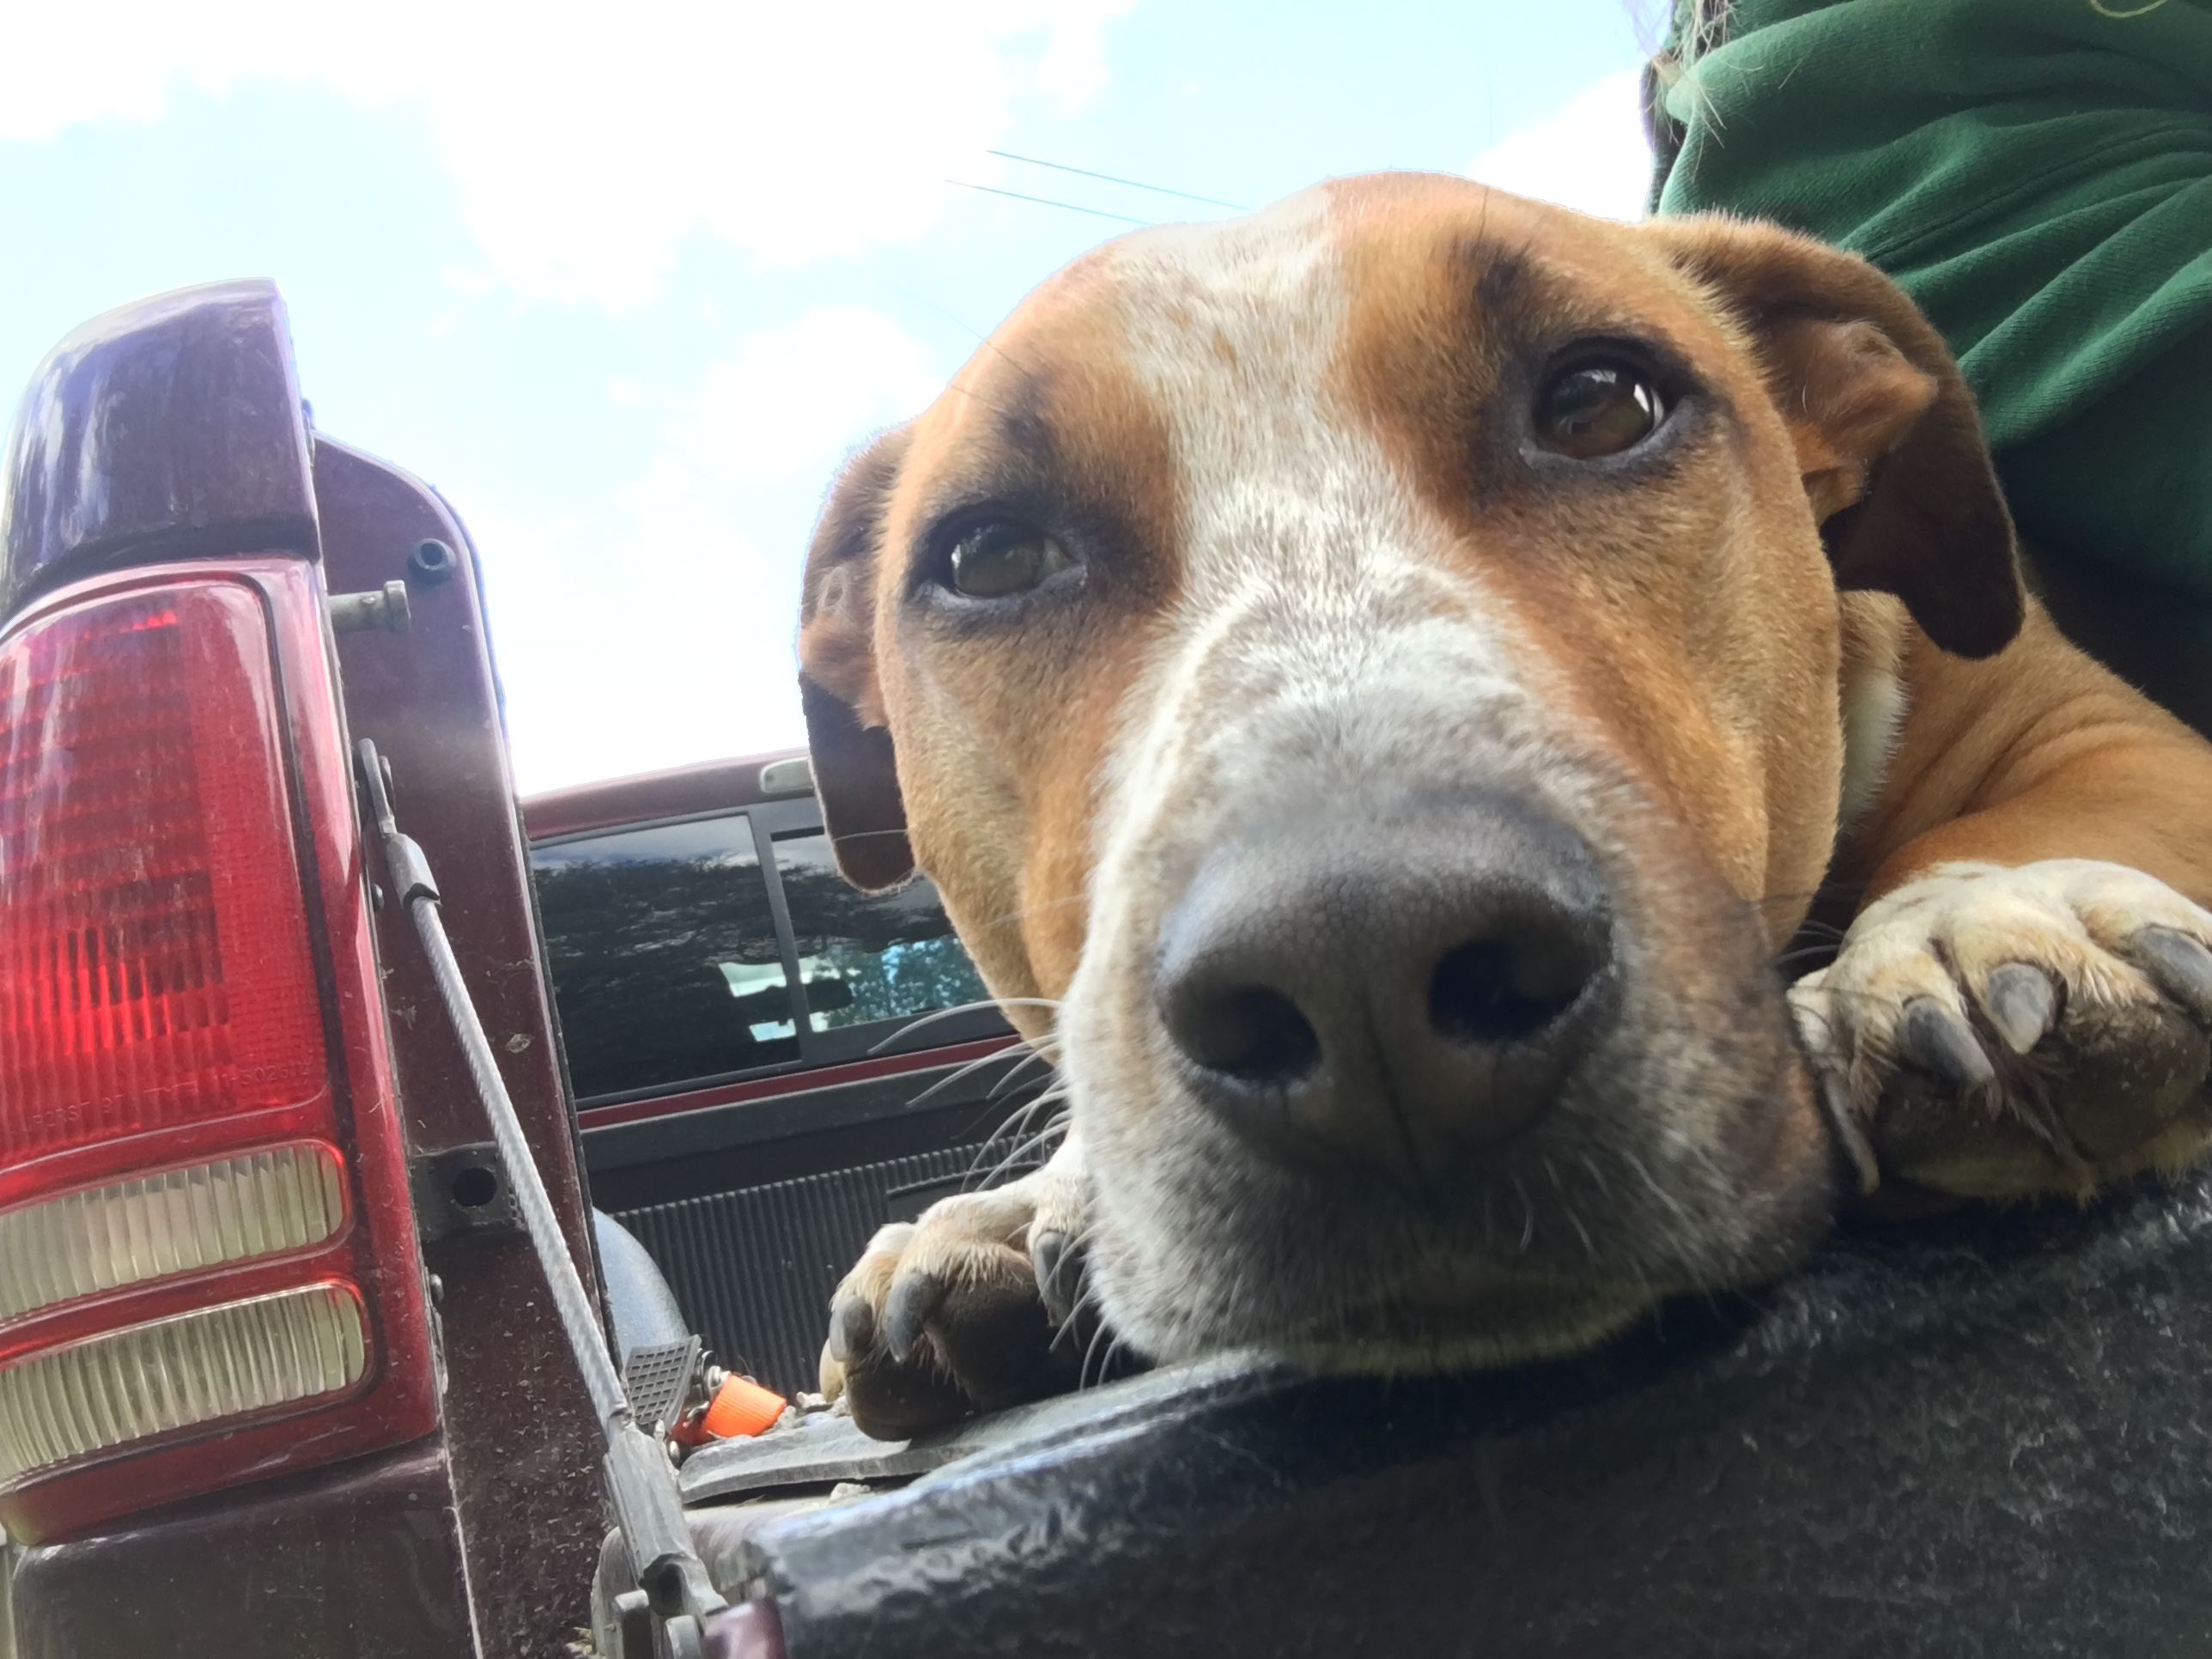 Conner found the work truck again.